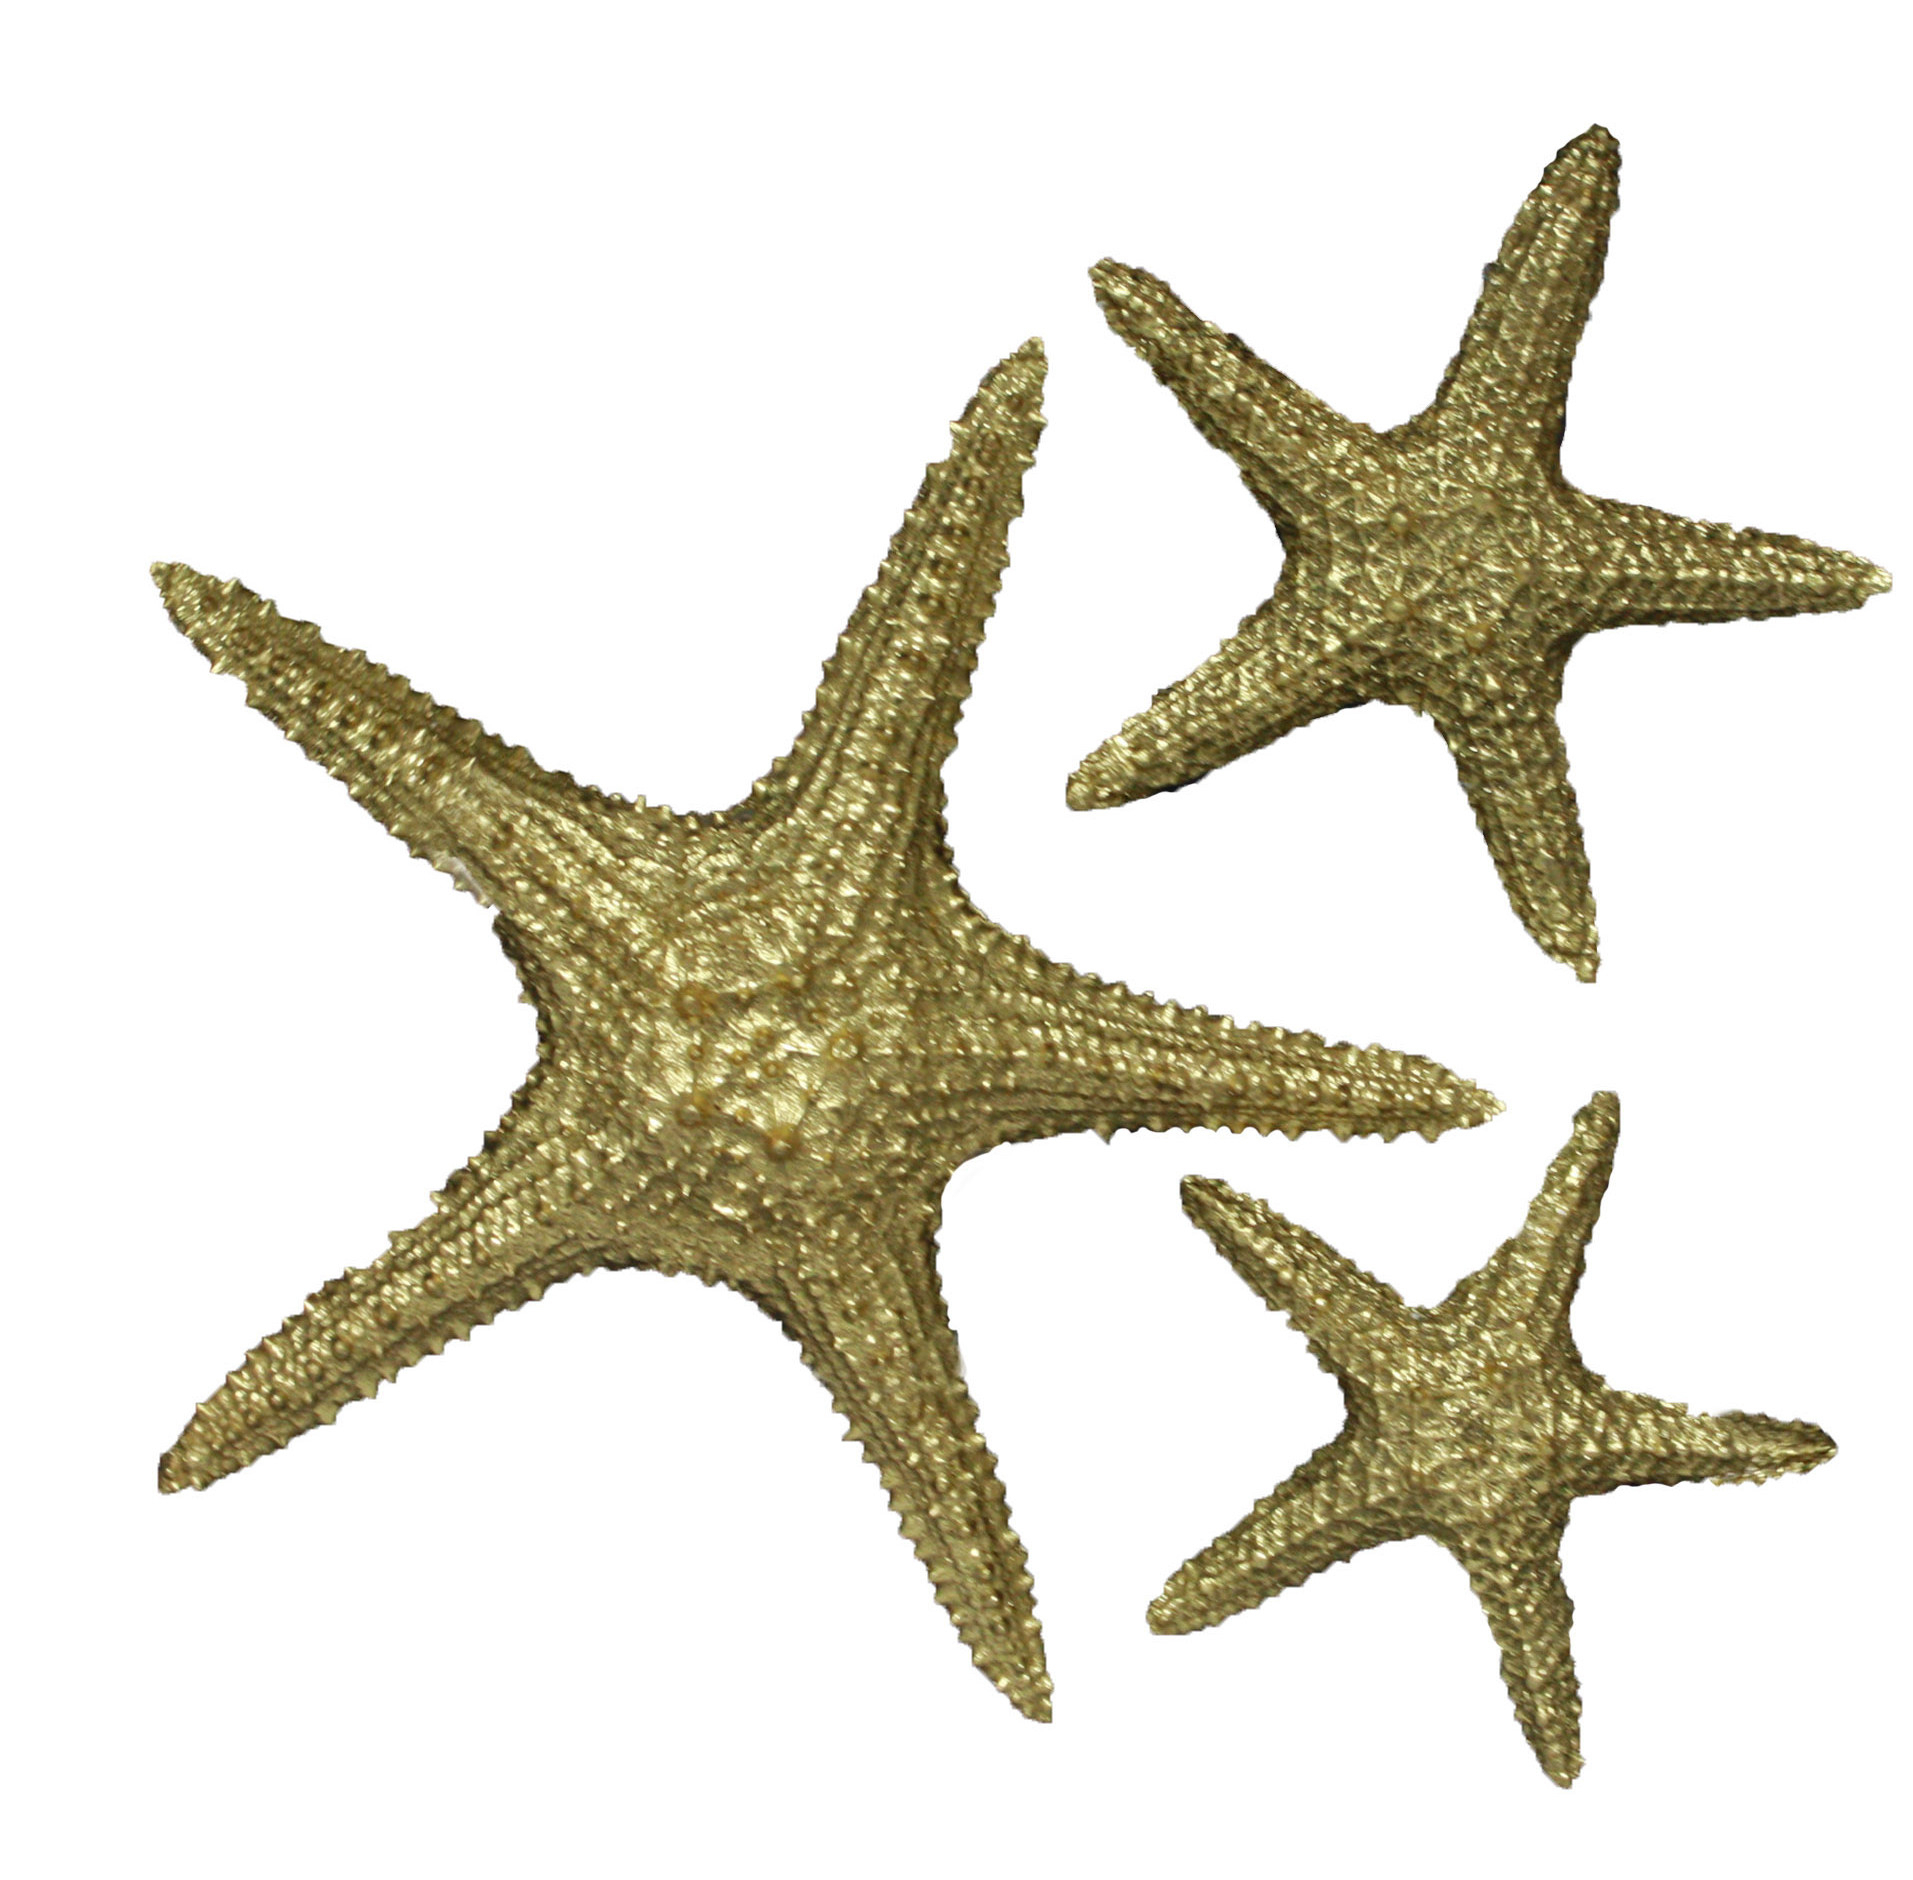 Ebay Within Most Popular Yelton 3 Piece Starfish Wall Decor Sets (View 7 of 20)